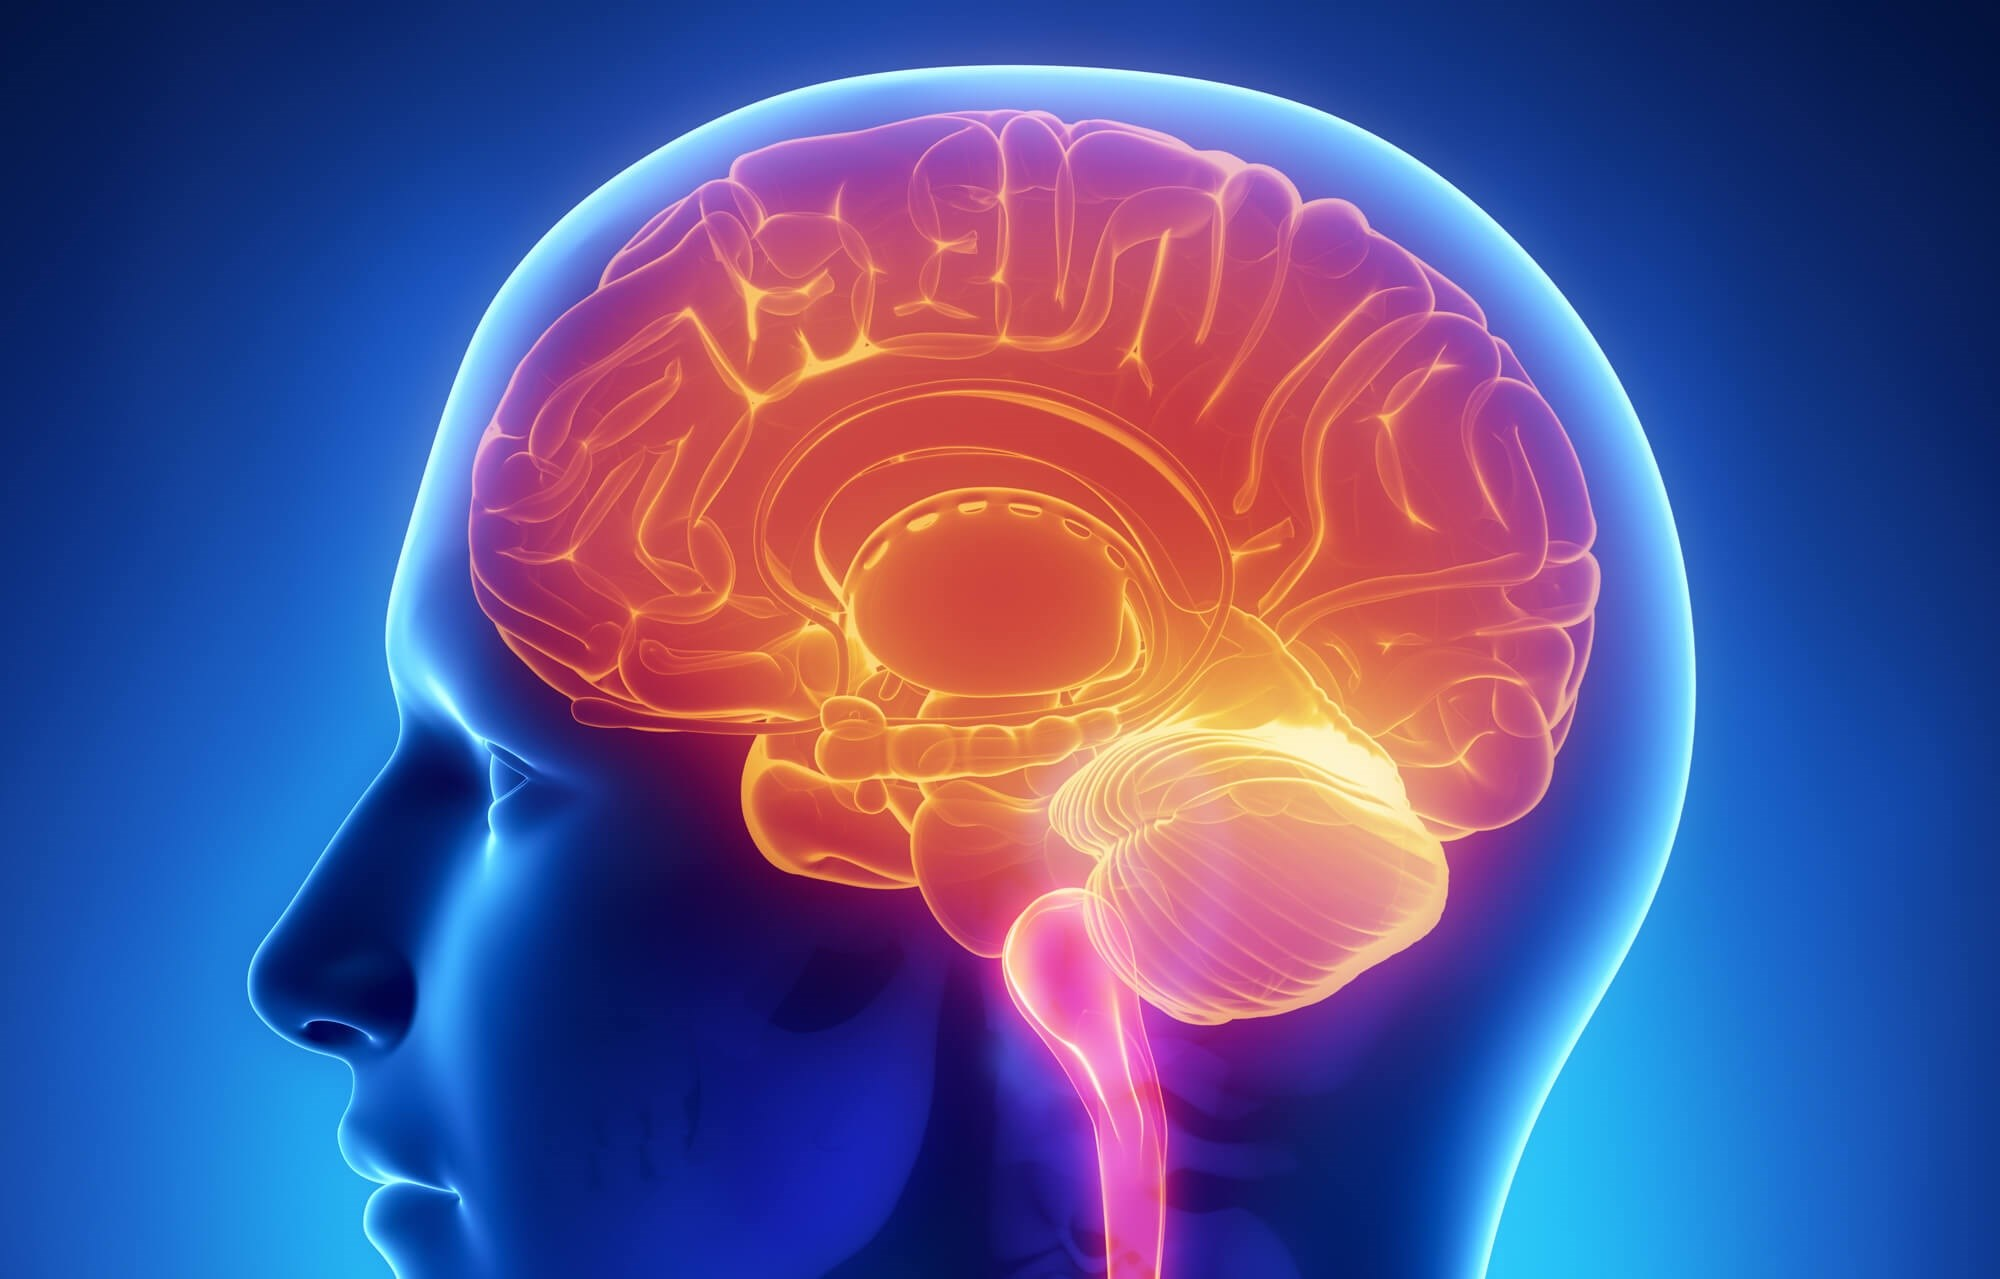 Patients with ADHD may require careful monitoring to permit early detection and treatment of disorders of the basal ganglia or cerebellum.